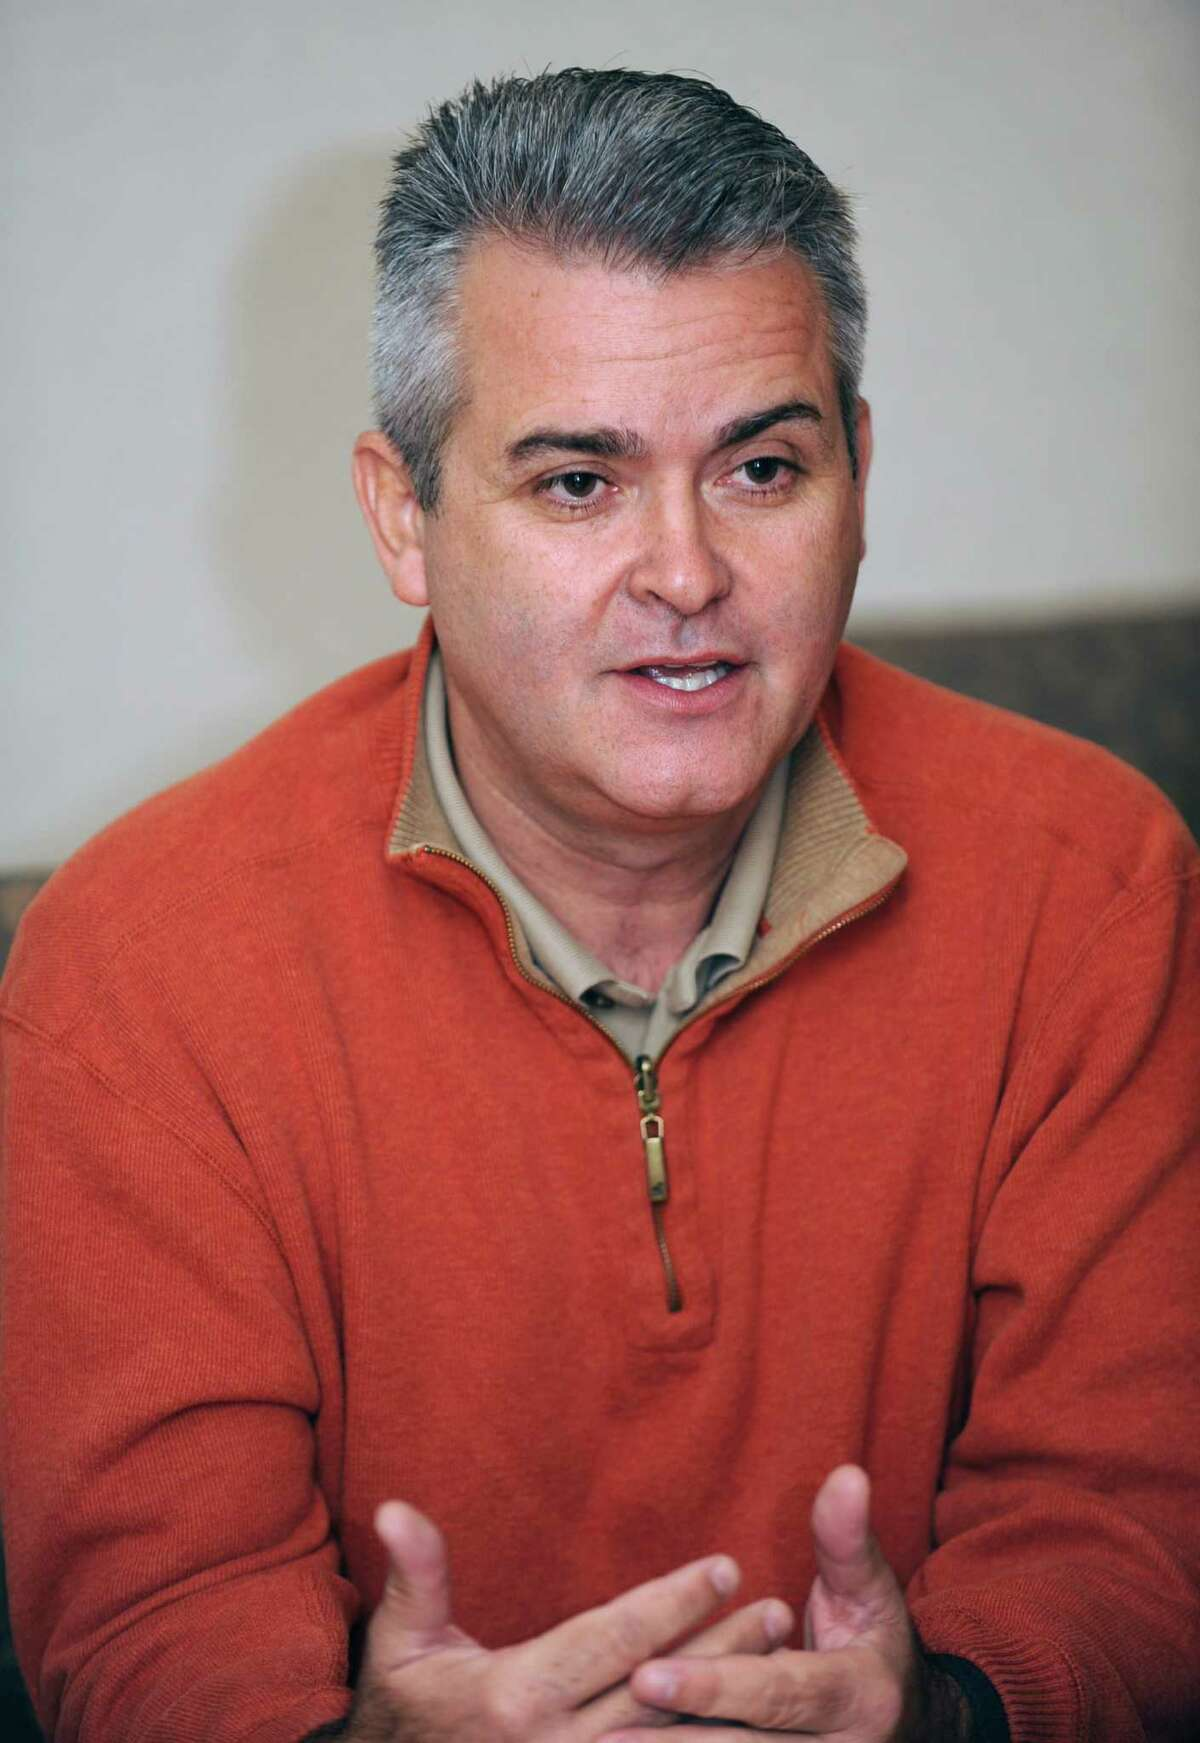 Assemblyman Steve McLaughlin speaks during an editorial board meeting at the Times Union on Thursday, Oct. 25, 2012 in Colonie, N.Y. McLaughlin is running against Cheryl Roberts in the 107th Assembly District. (Lori Van Buren / Times Union)